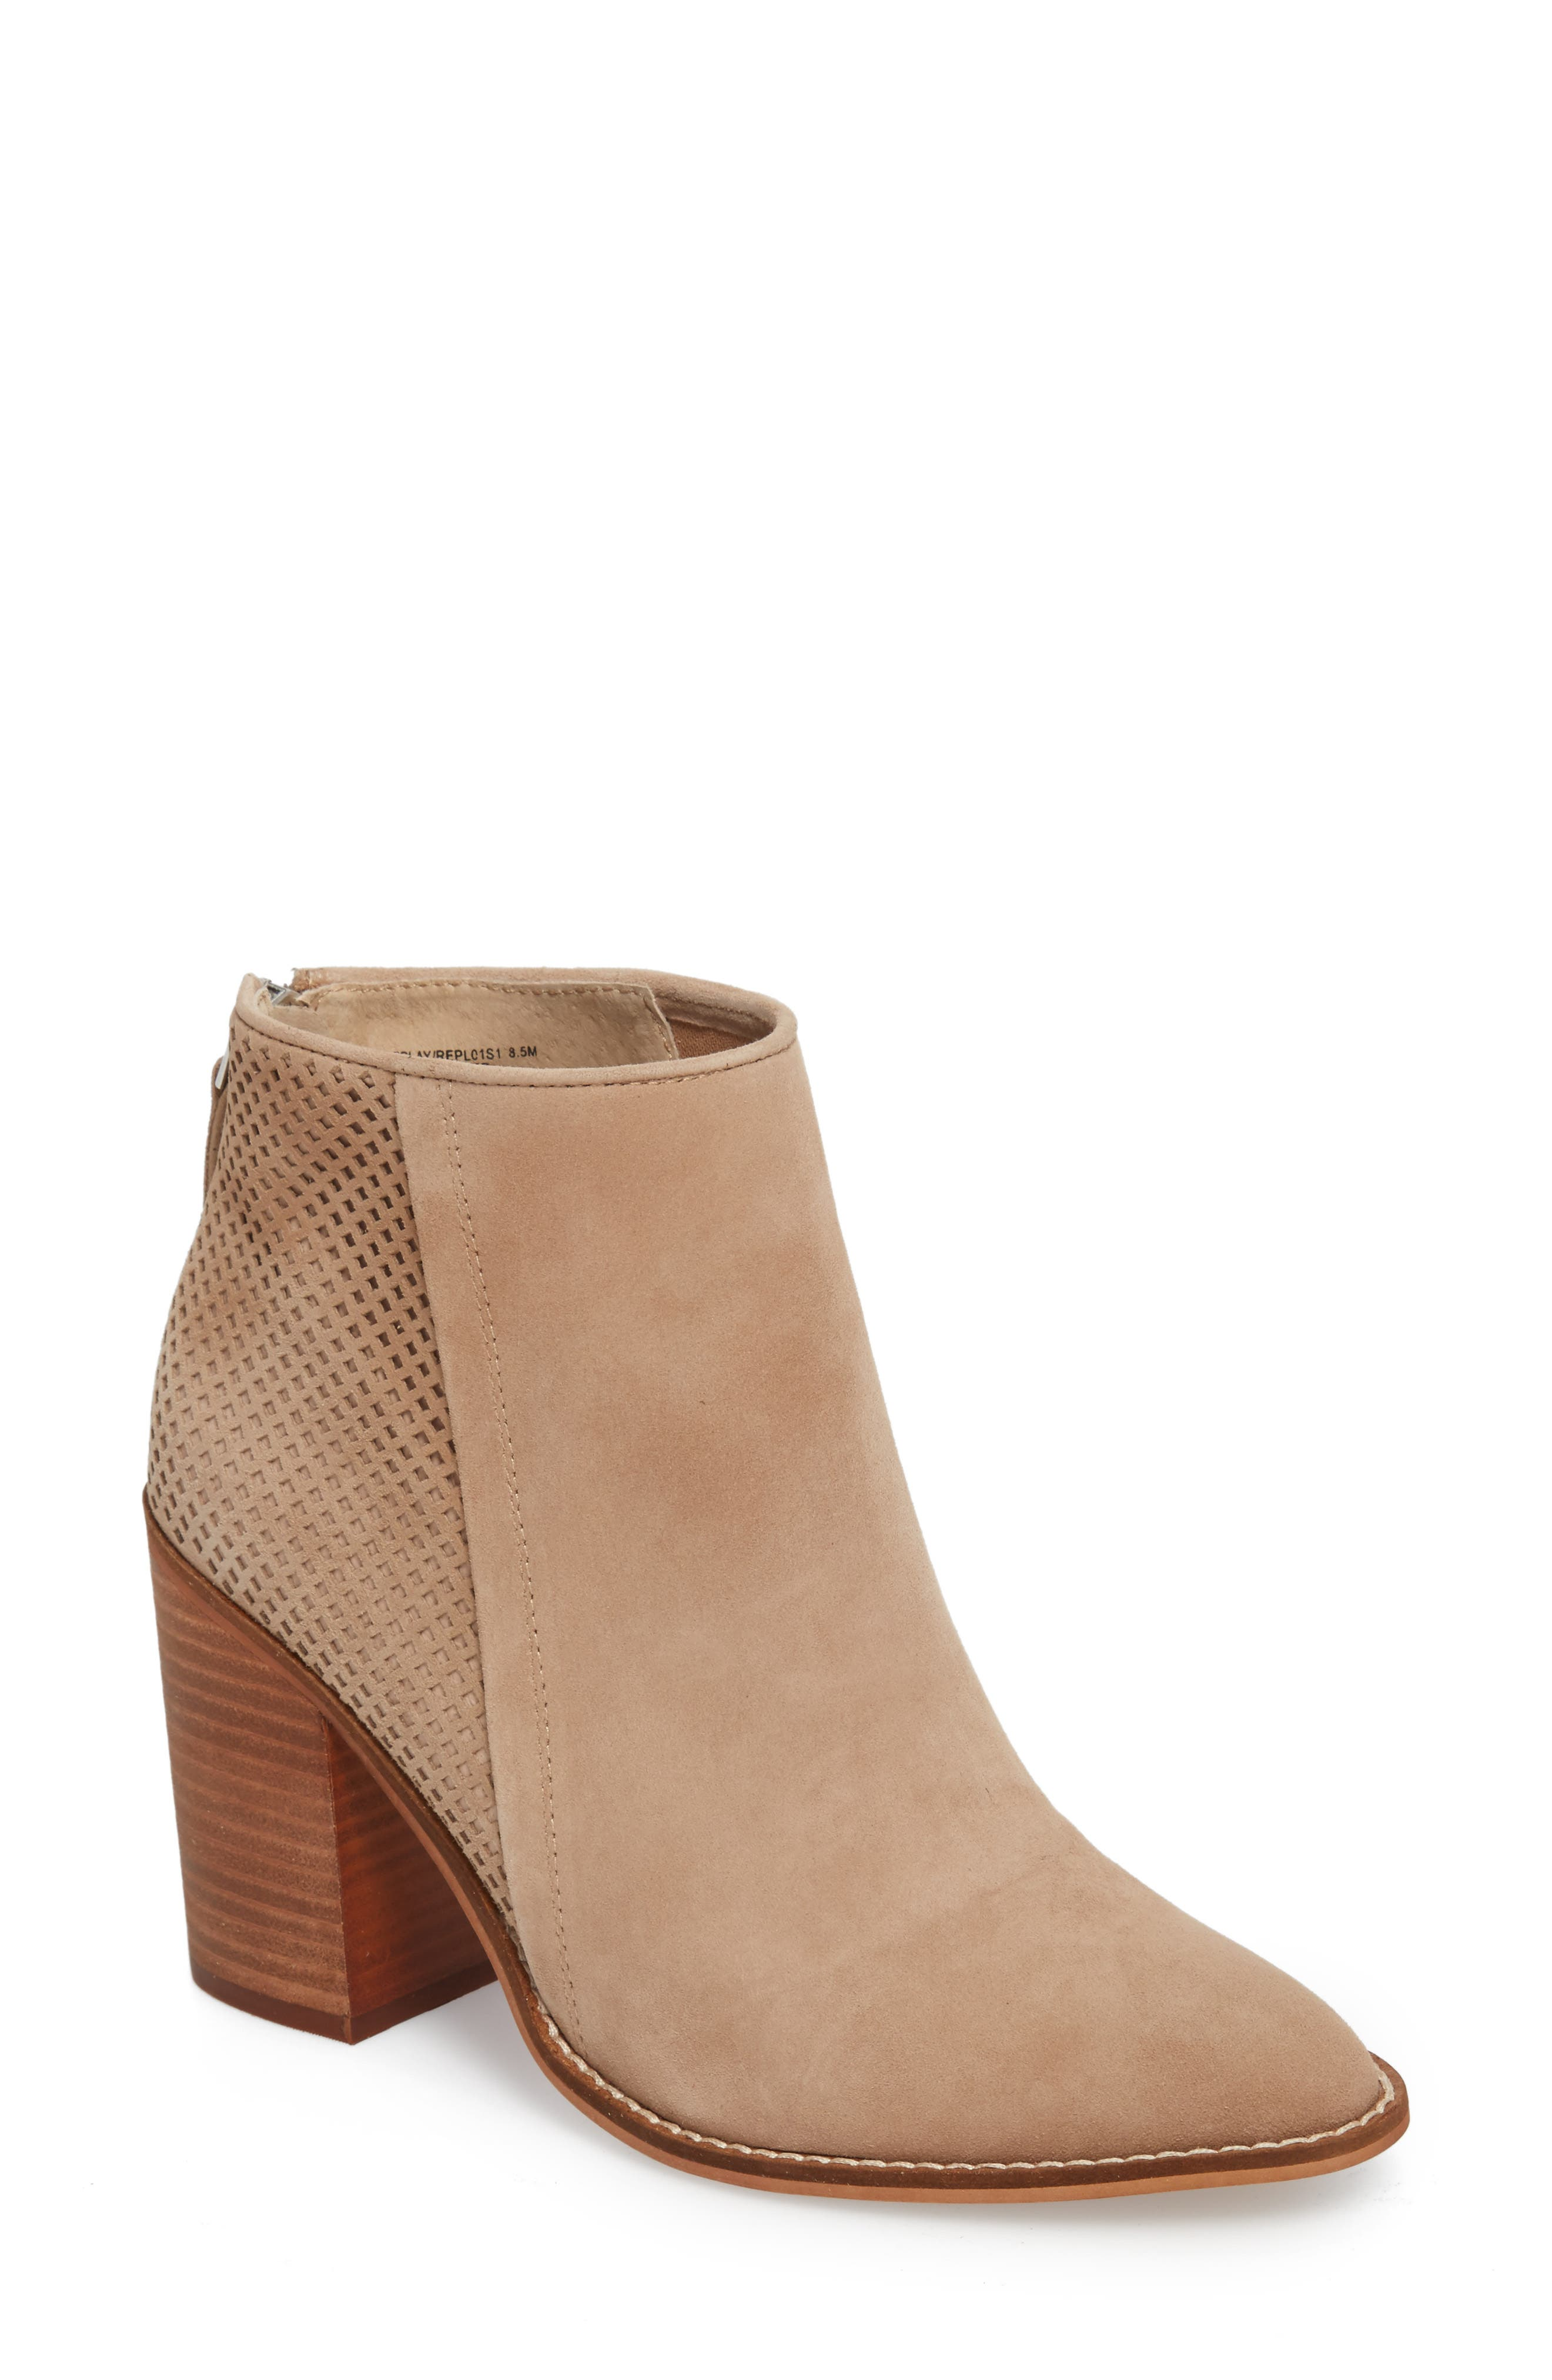 Steve Madden Replay Bootie (Women)